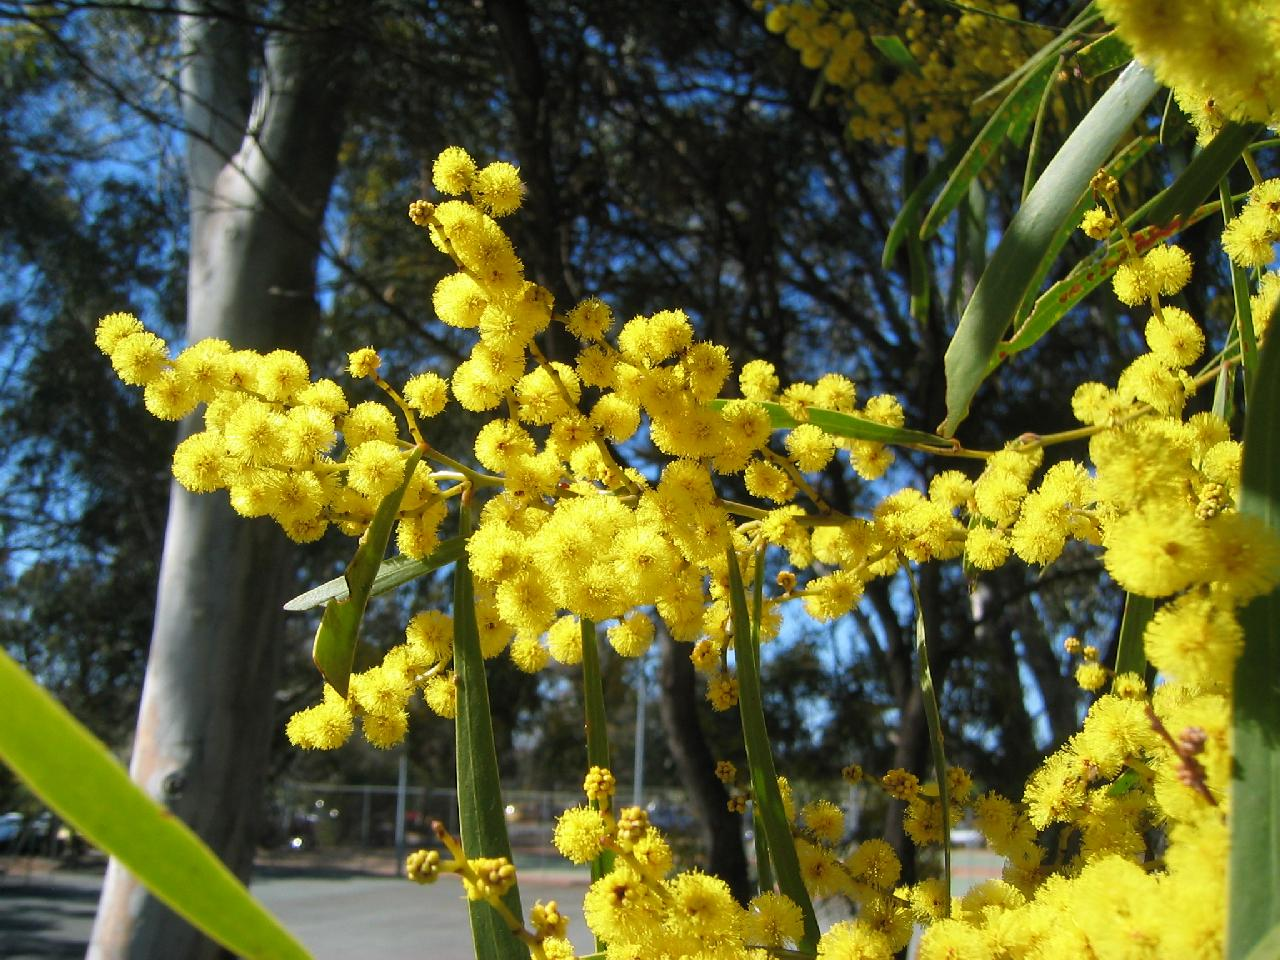 http://upload.wikimedia.org/wikipedia/commons/a/ab/Australian_Golden_Wattle_Blossums.jpg